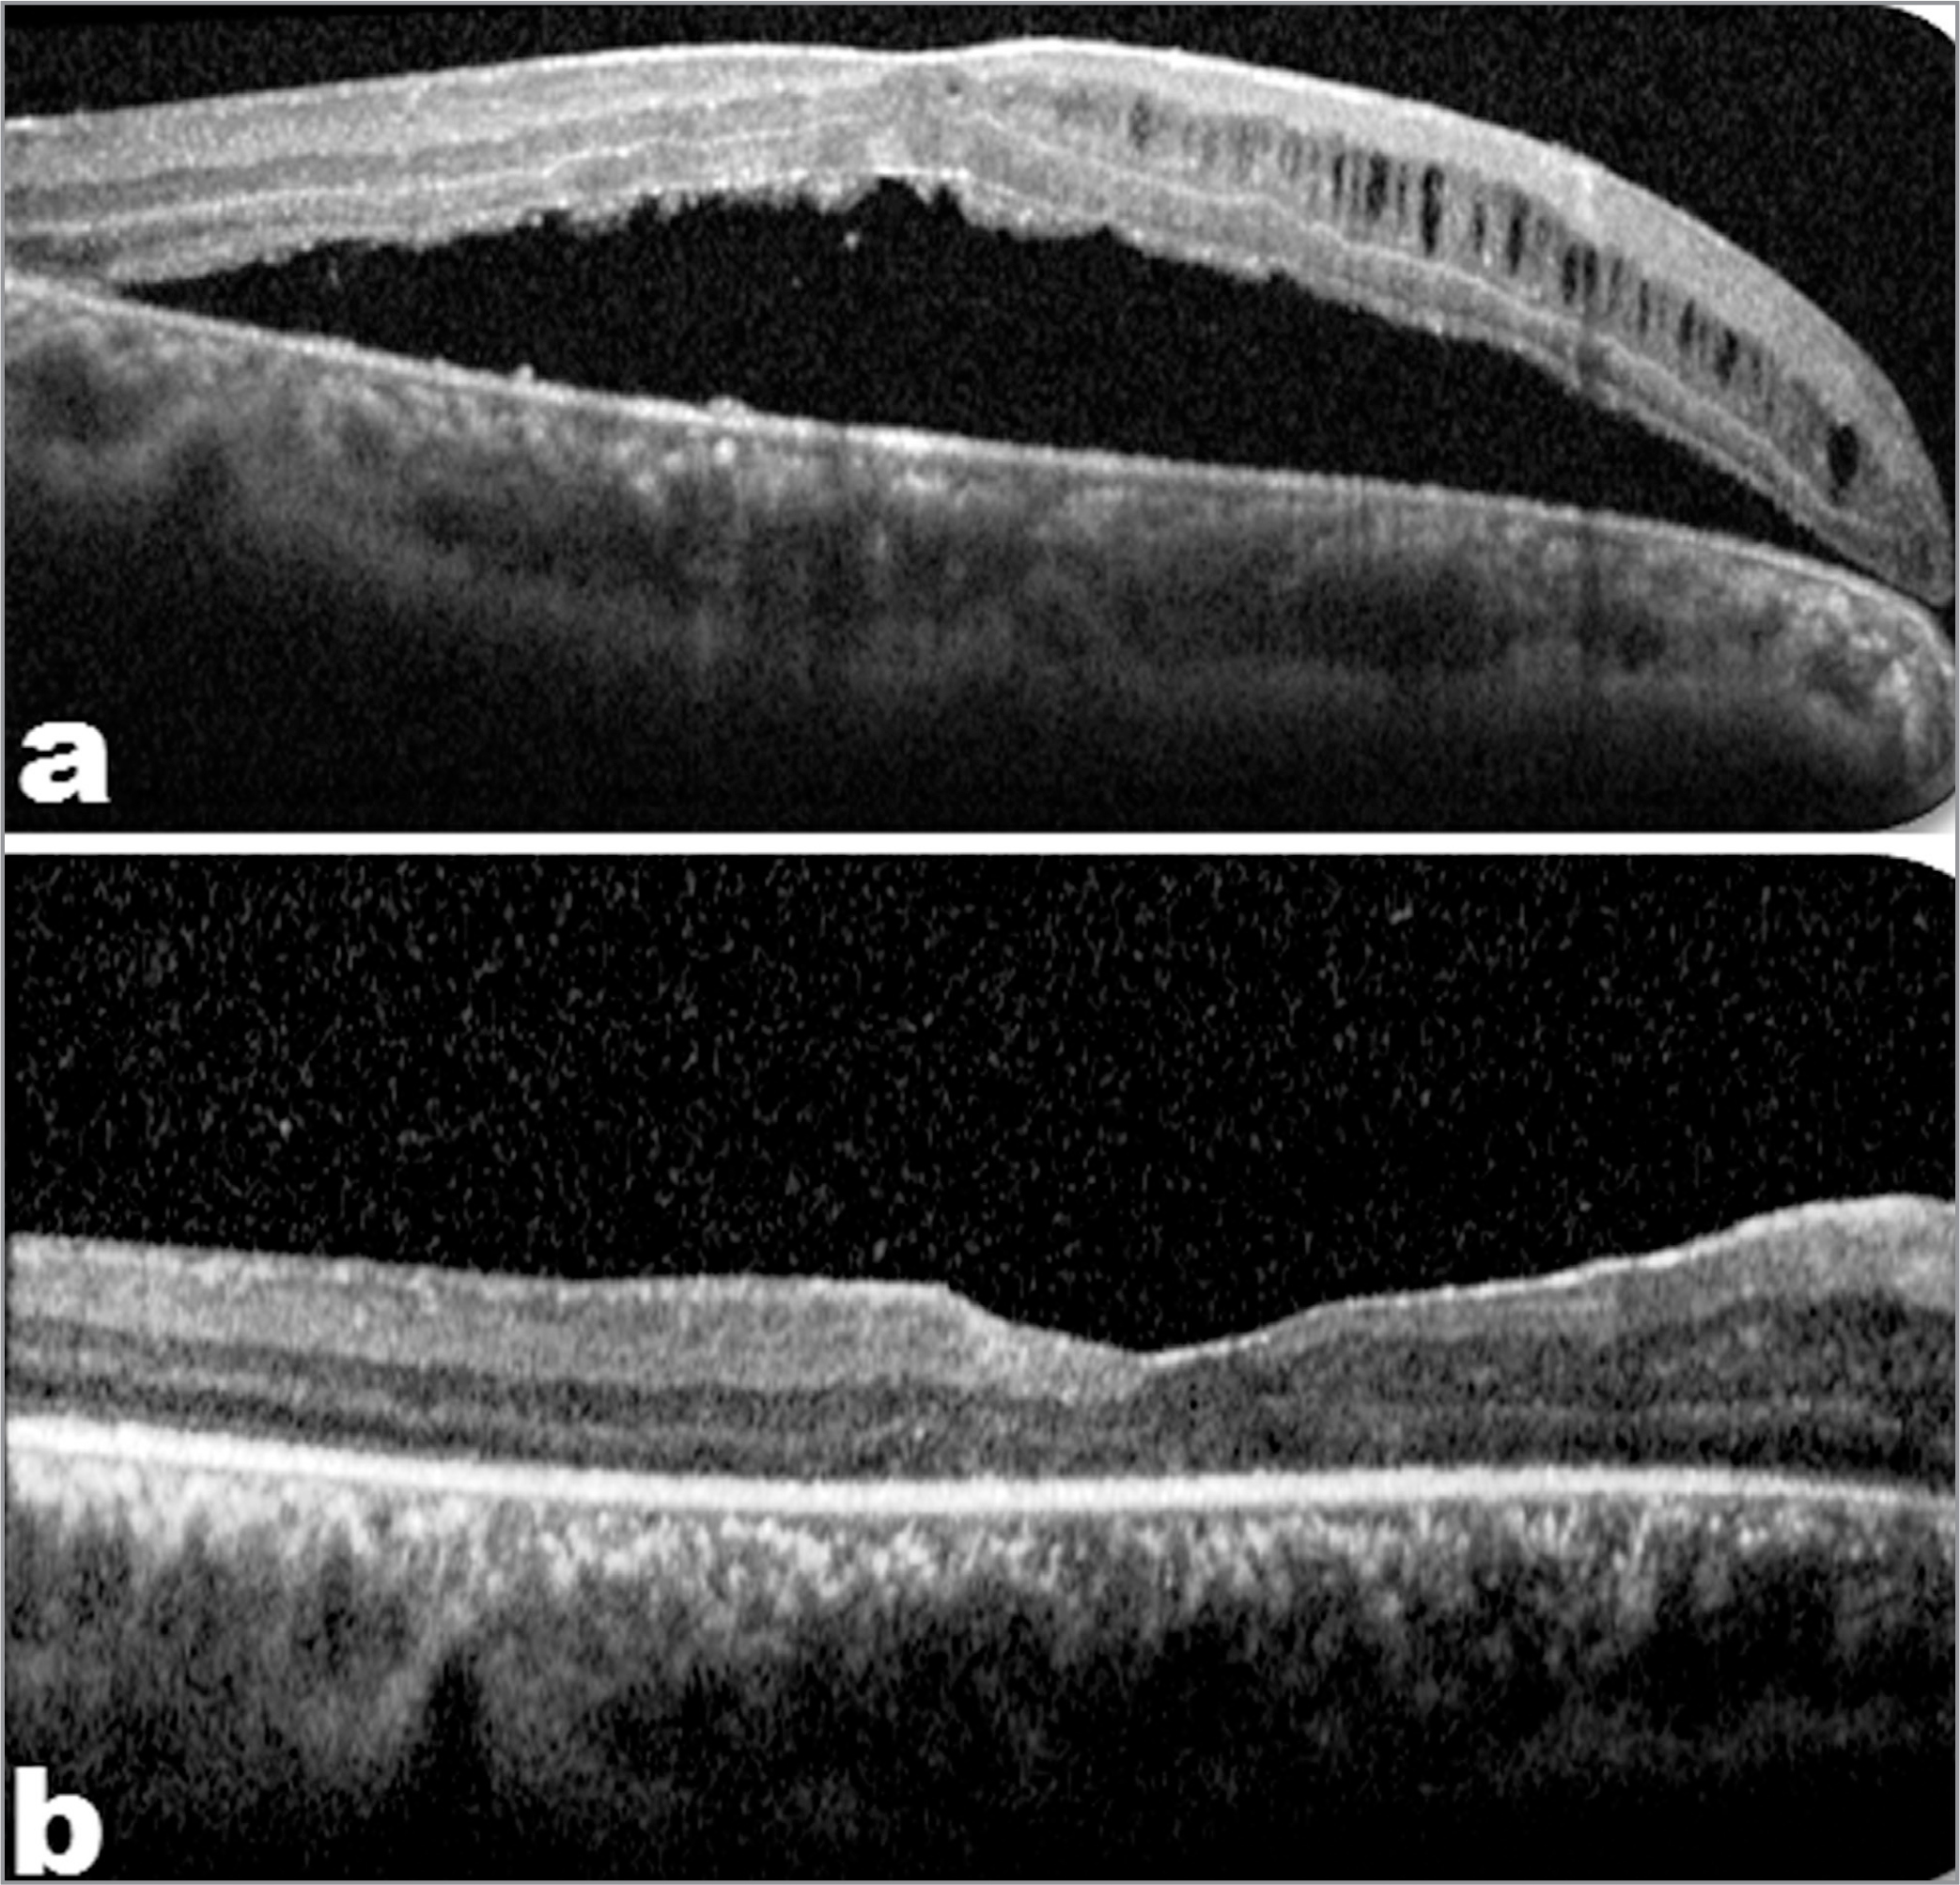 Preoperative (a) and postoperative (b) optical coherence tomography scans of patient 1 of the internal limiting membrane (ILM)-stuffing group showing complete resolution of outer retinal schisis and neurosensory detachment following inverted ILM stuffing over the pit in group 1.